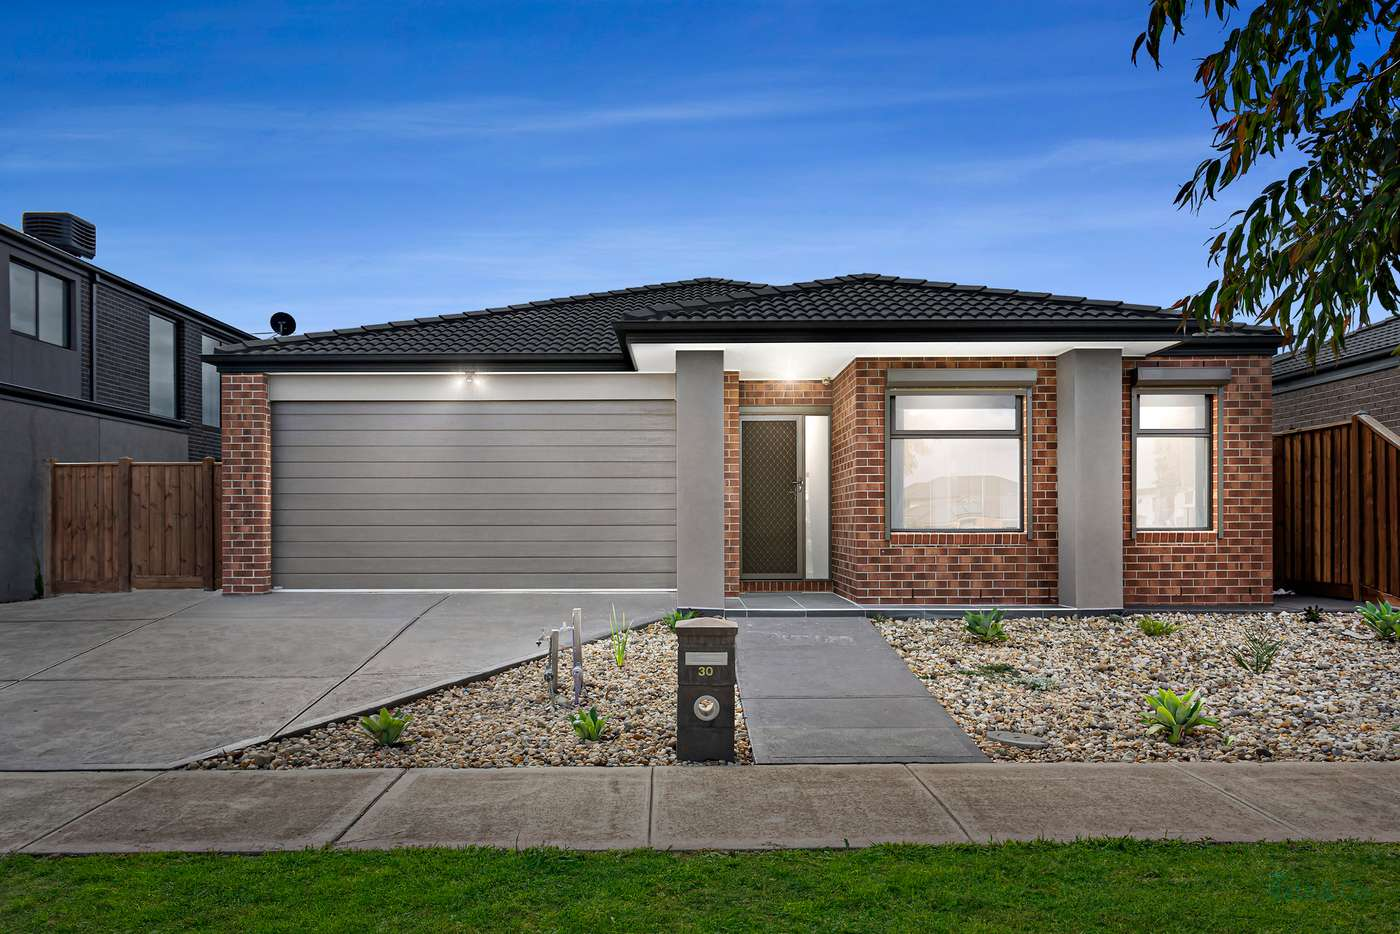 Main view of Homely house listing, 30 Bellavista Drive, Wollert VIC 3750